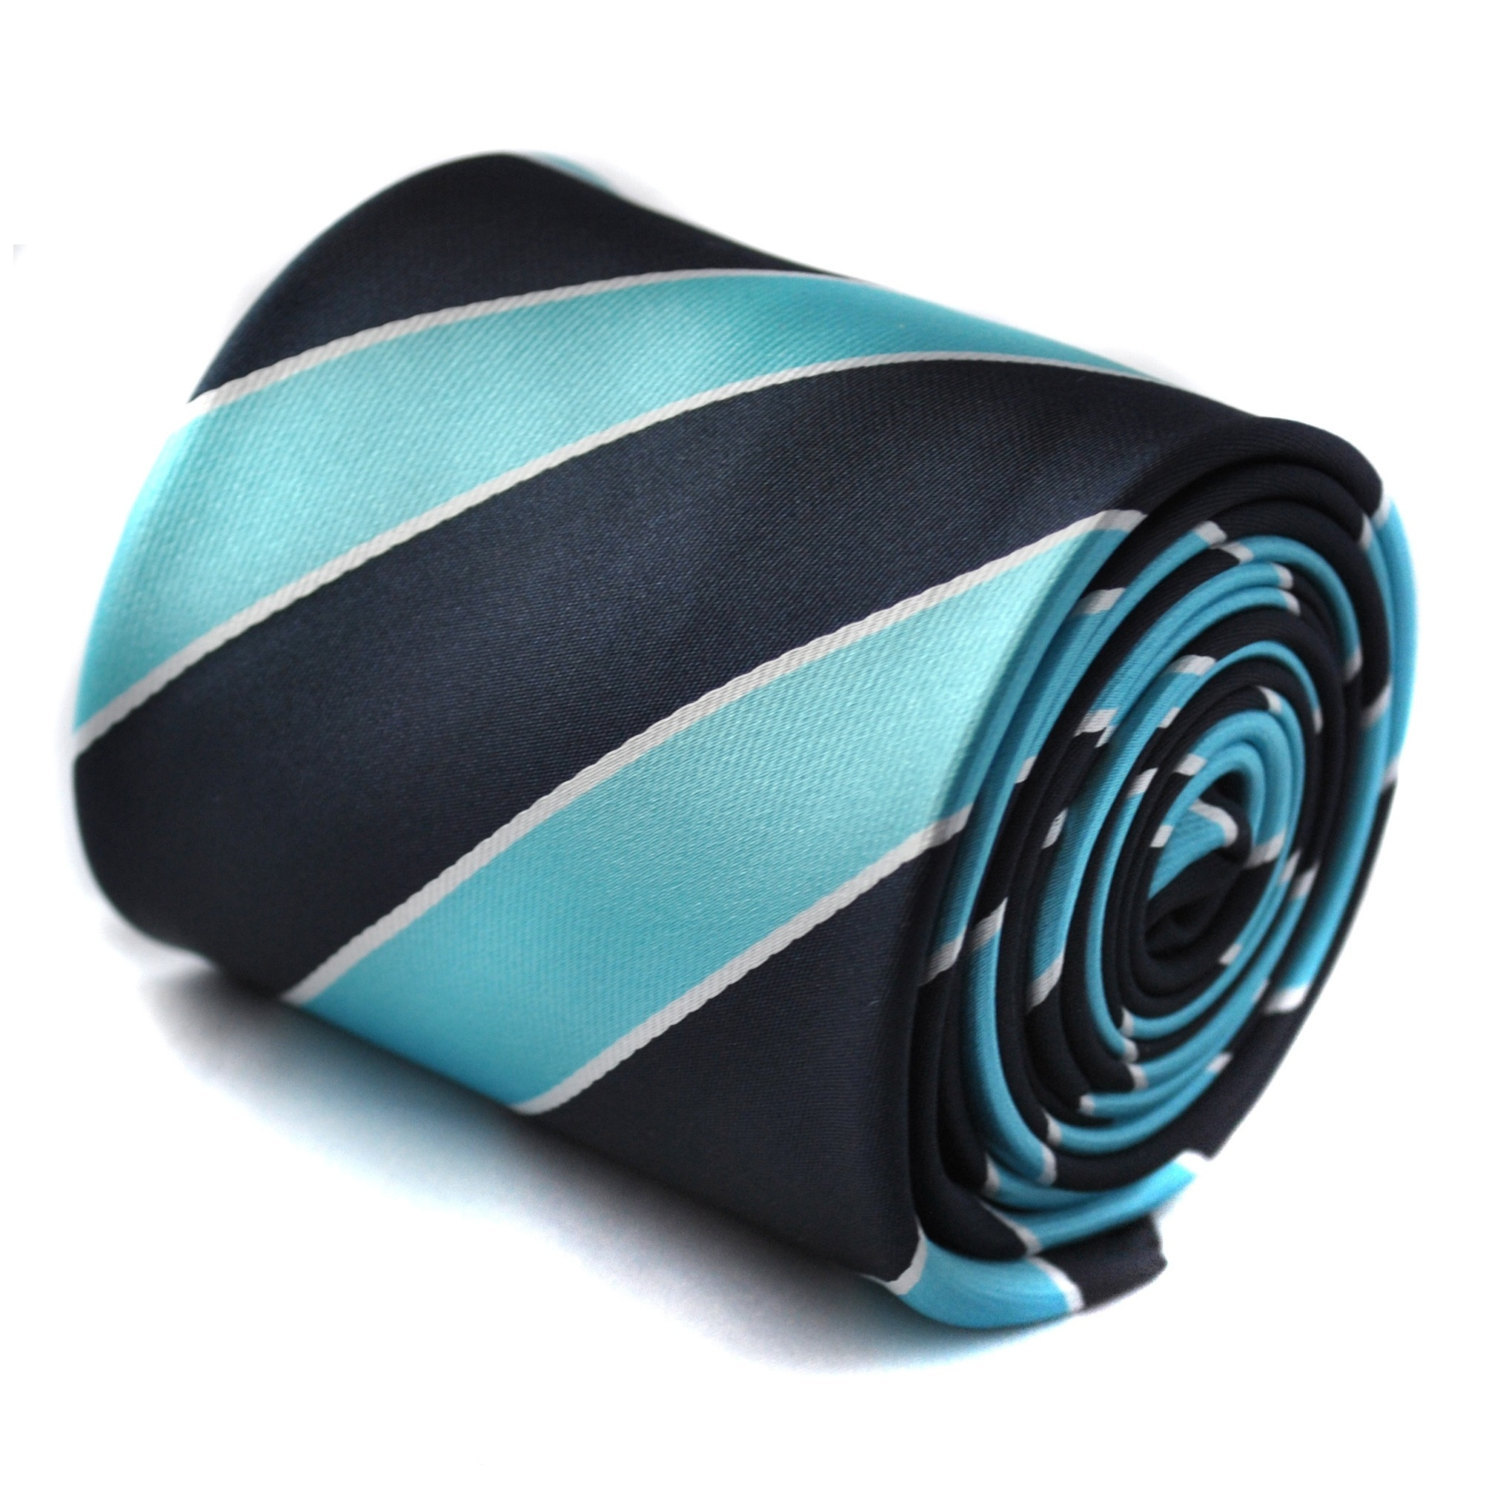 navy and turquoise barber striped tie with signature floral design to rear by Fr